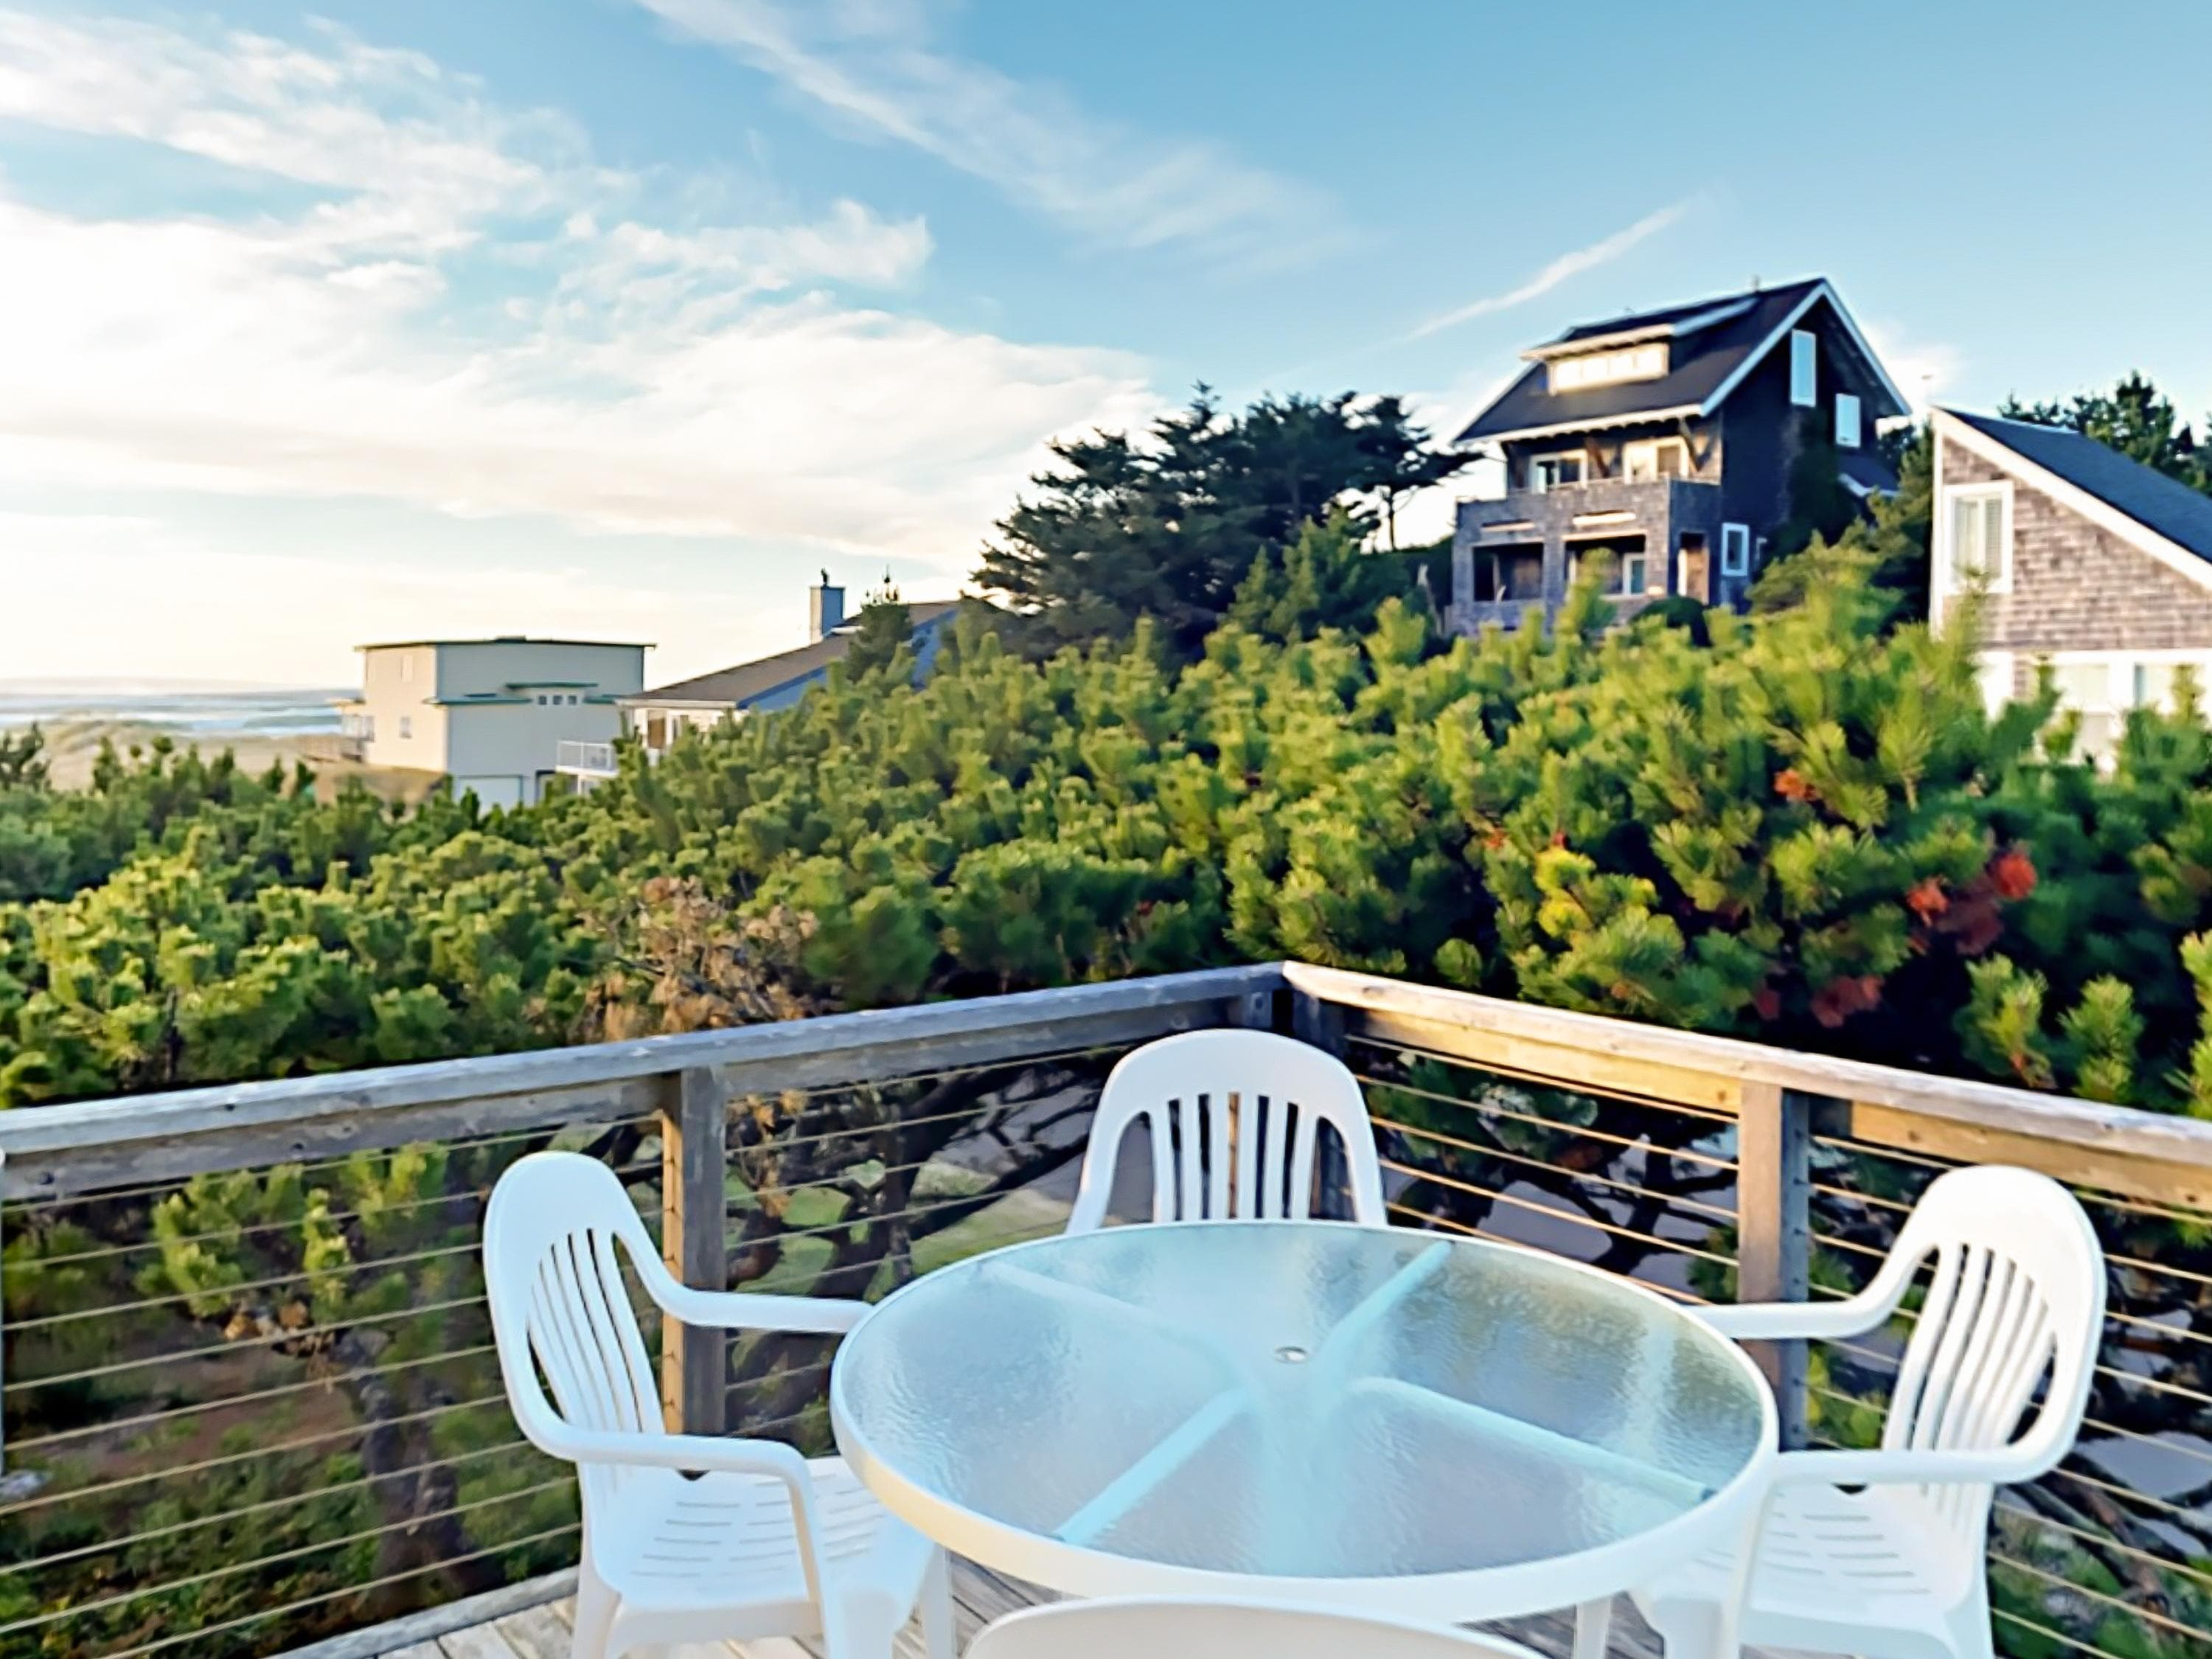 Breathe the fresh coastal air on the spacious balcony with fantastic ocean views.